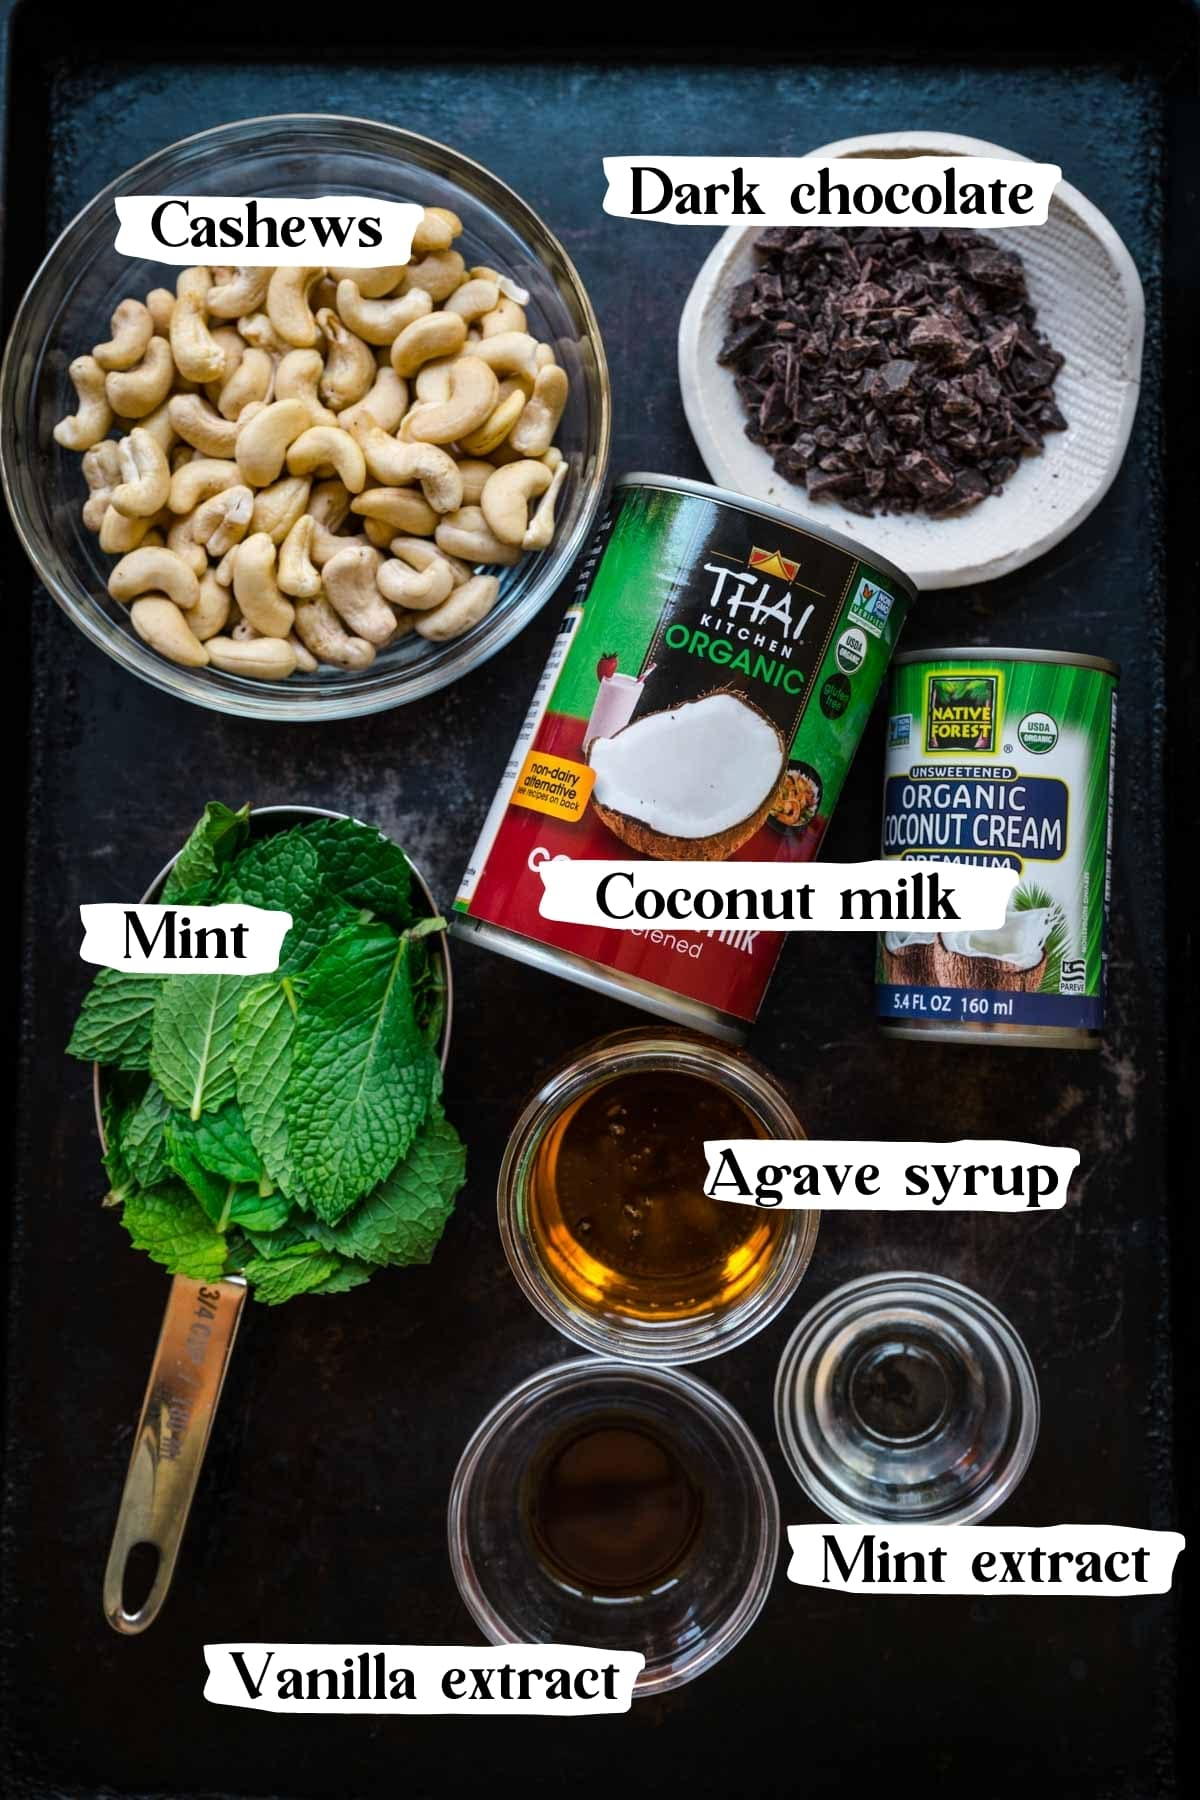 overhead view of ingredients for vegan mint chocolate chip ice cream on sheet pan.